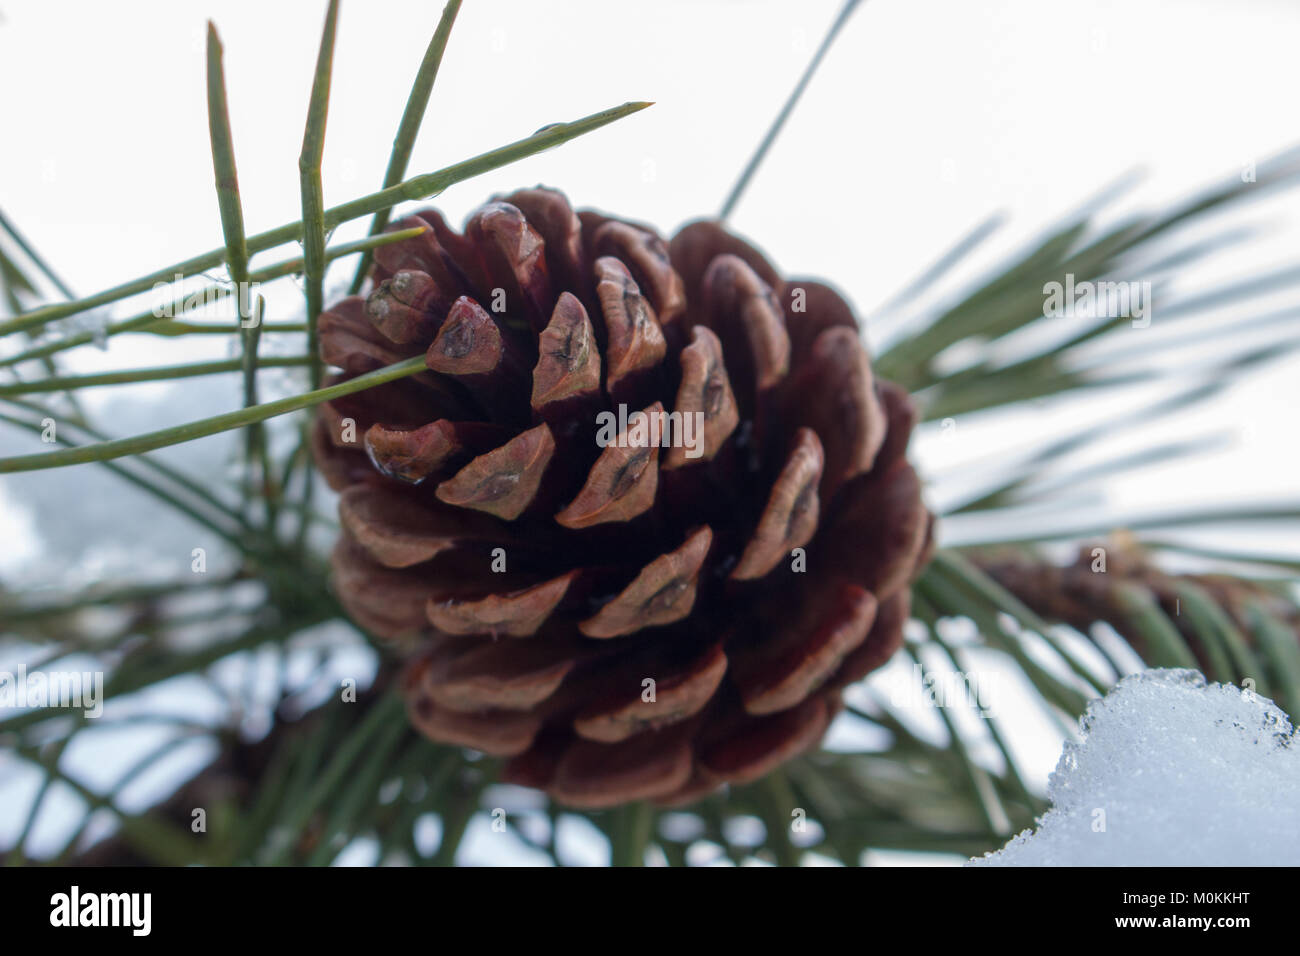 23 Jan 2018 A Pine Cone (Conifer Cone) in the morning on a snowy day. - Stock Image